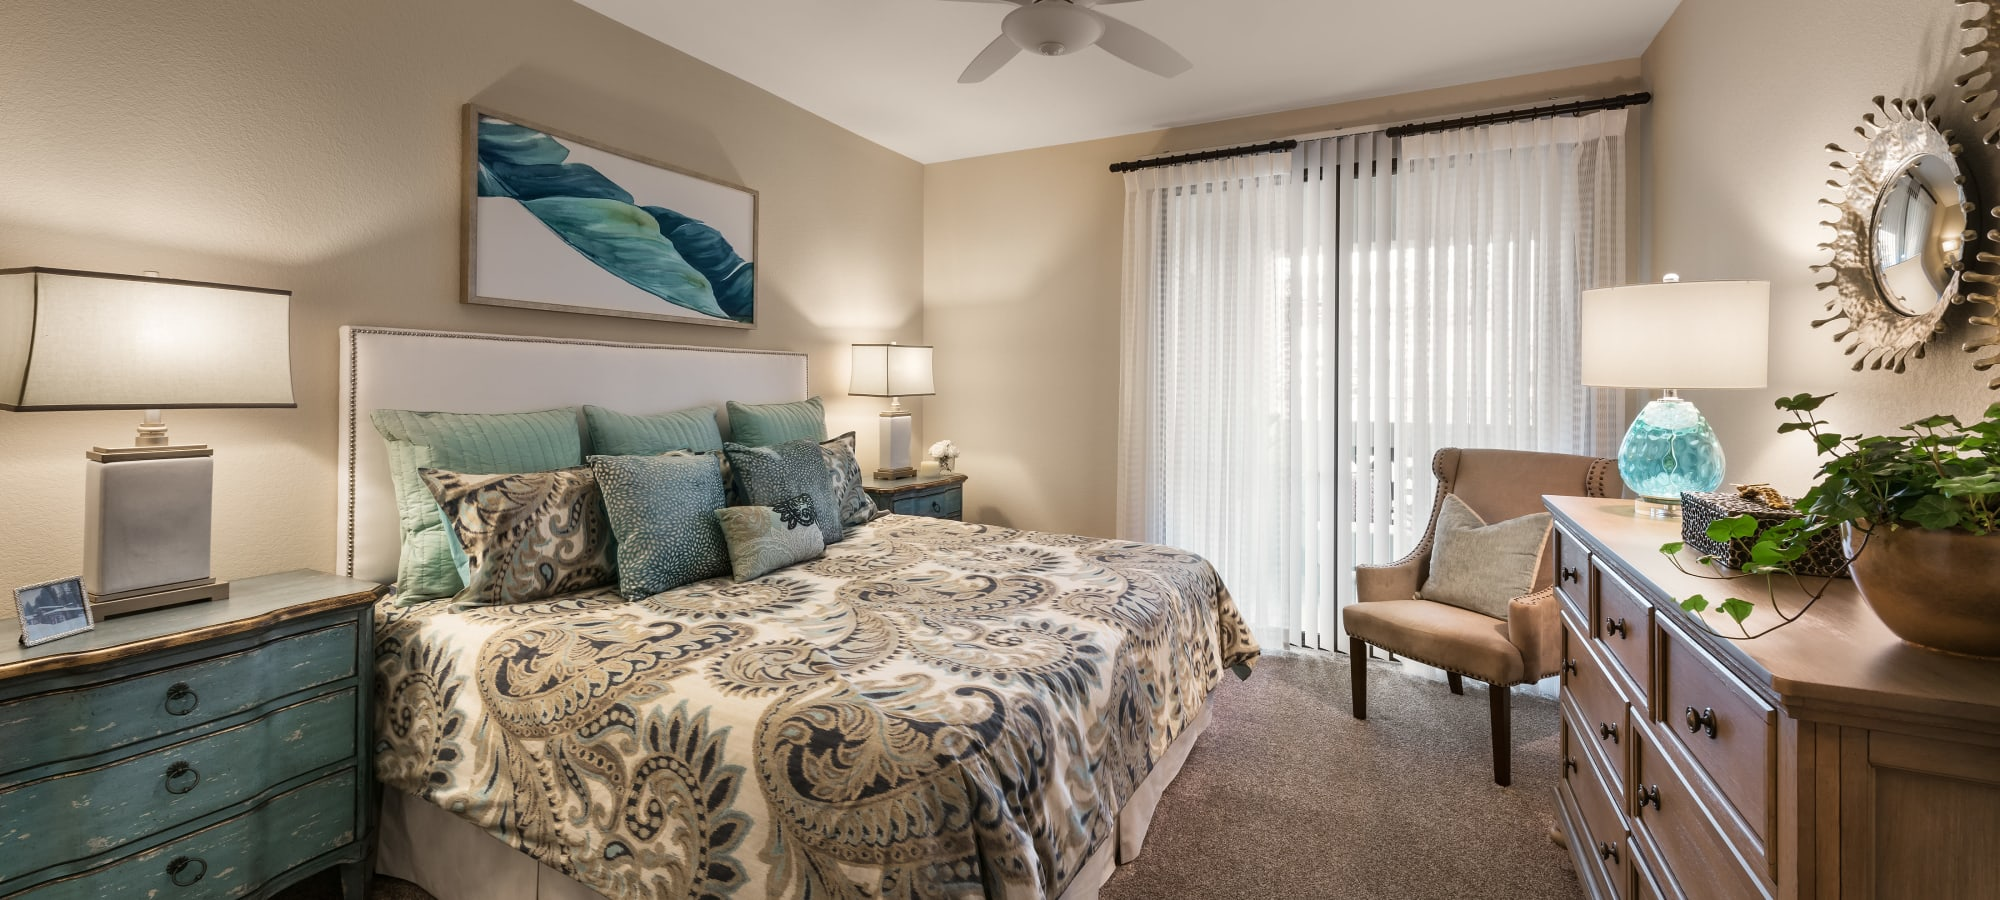 Master bedroom with plush carpet in model home at San Villante in Mesa, Arizona